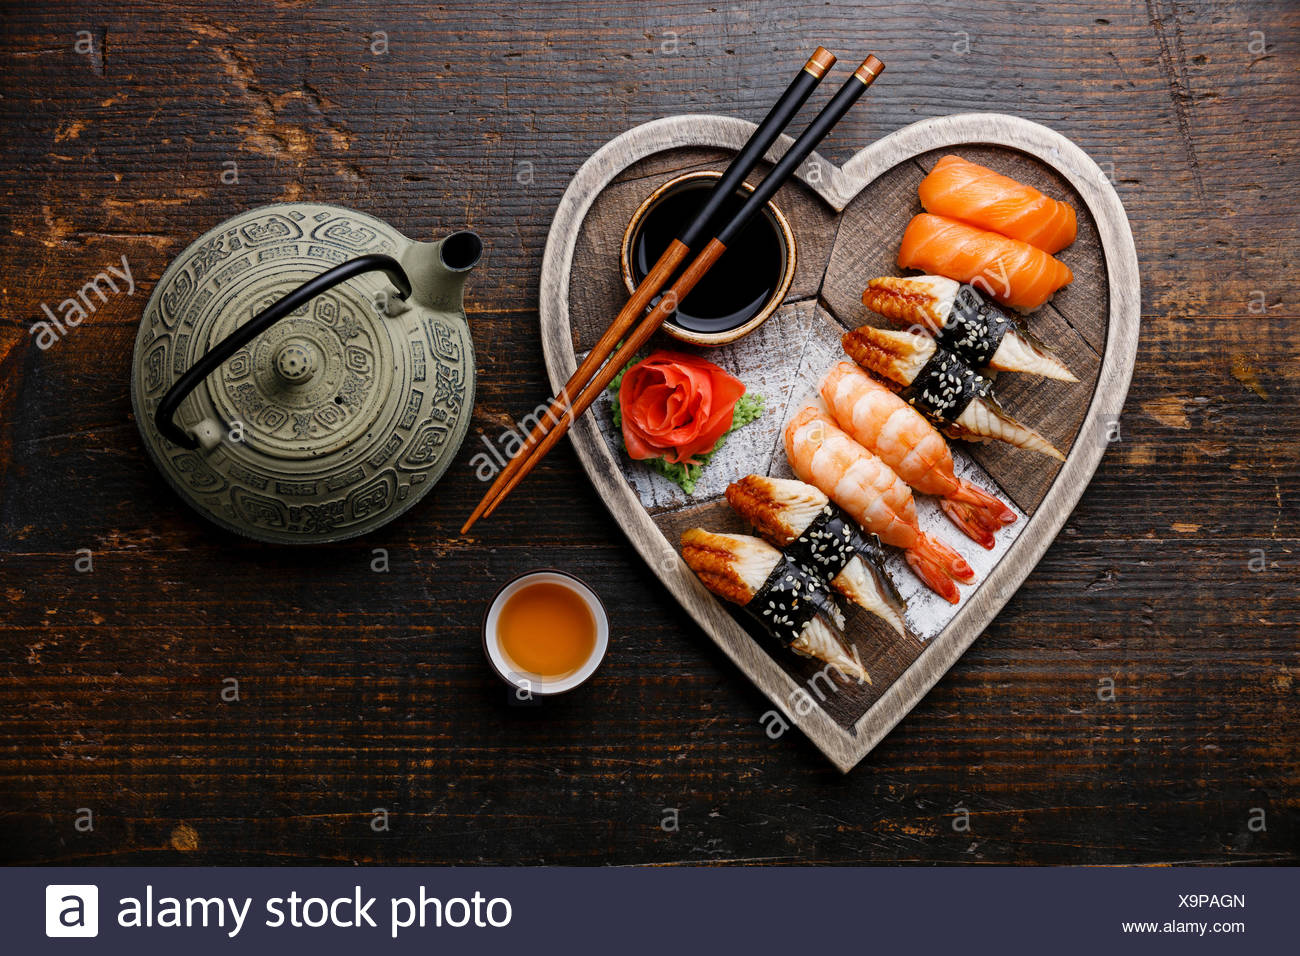 Sushi Set nigiri and tea served on Heart shape wooden tray on dark wooden background - Stock Image